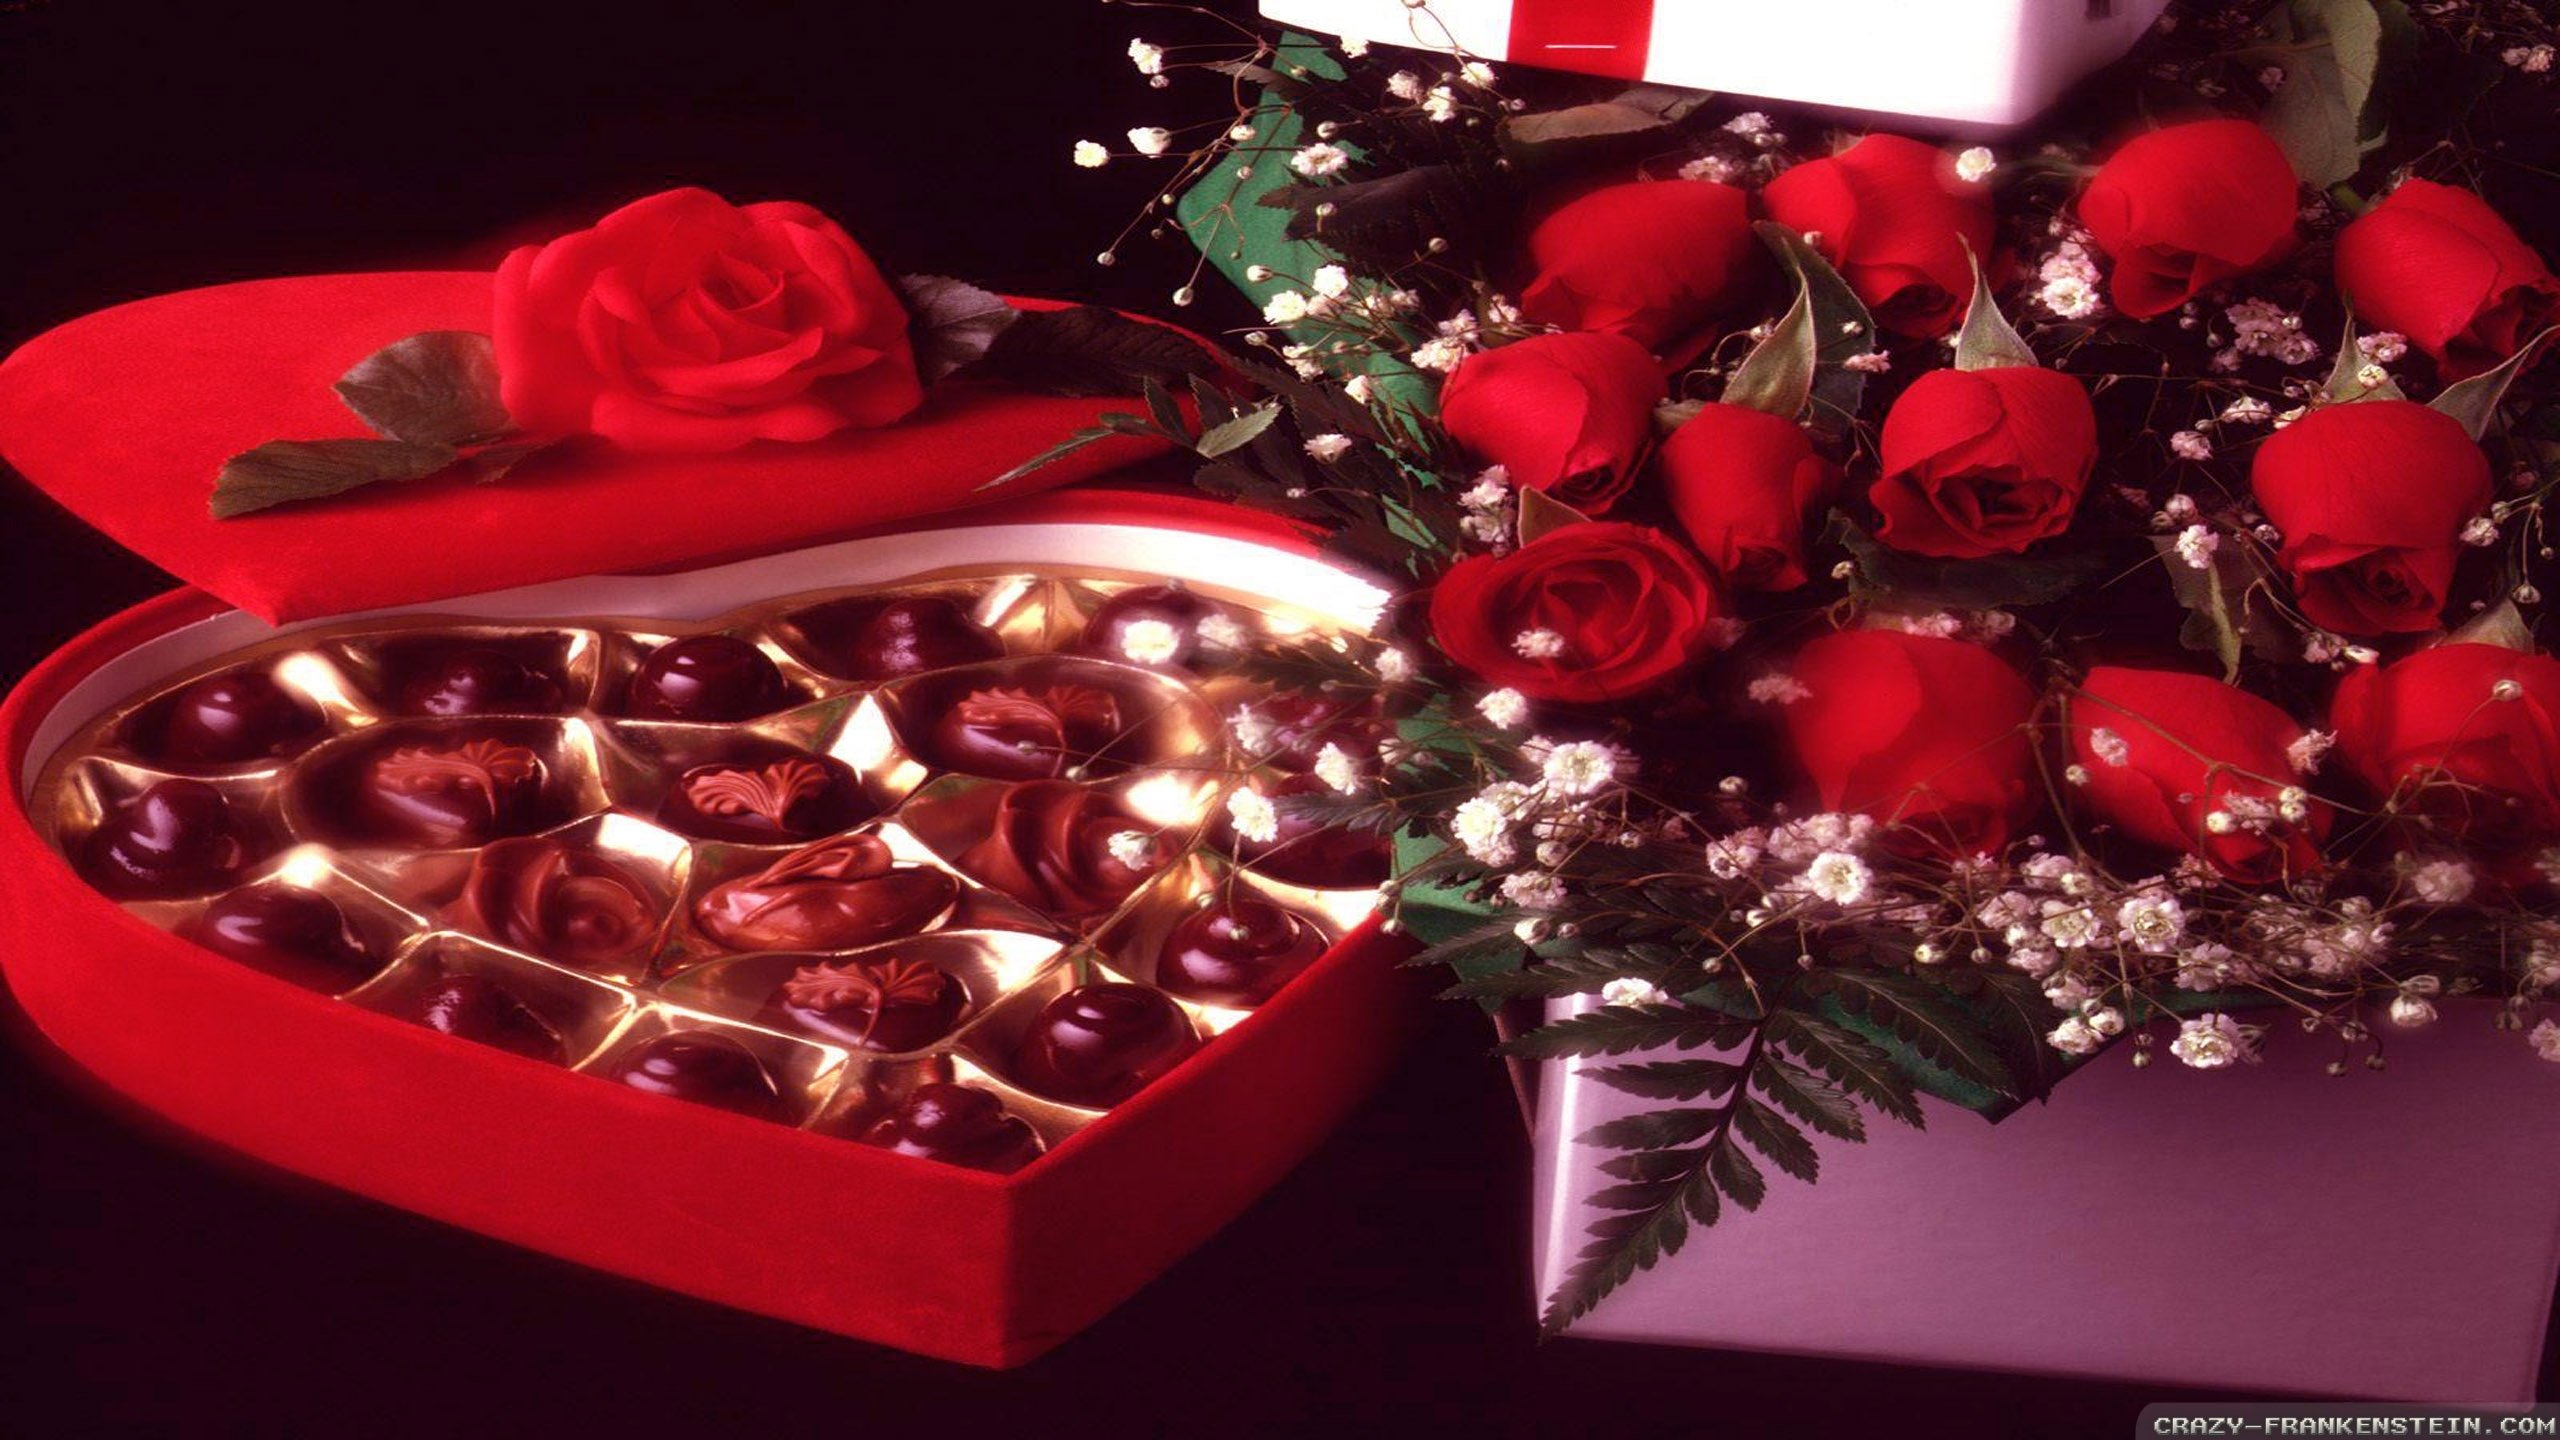 10 Nice Valentines Day Ideas For New Couples romantic gift ideasfor him or her to celebrate valentines day